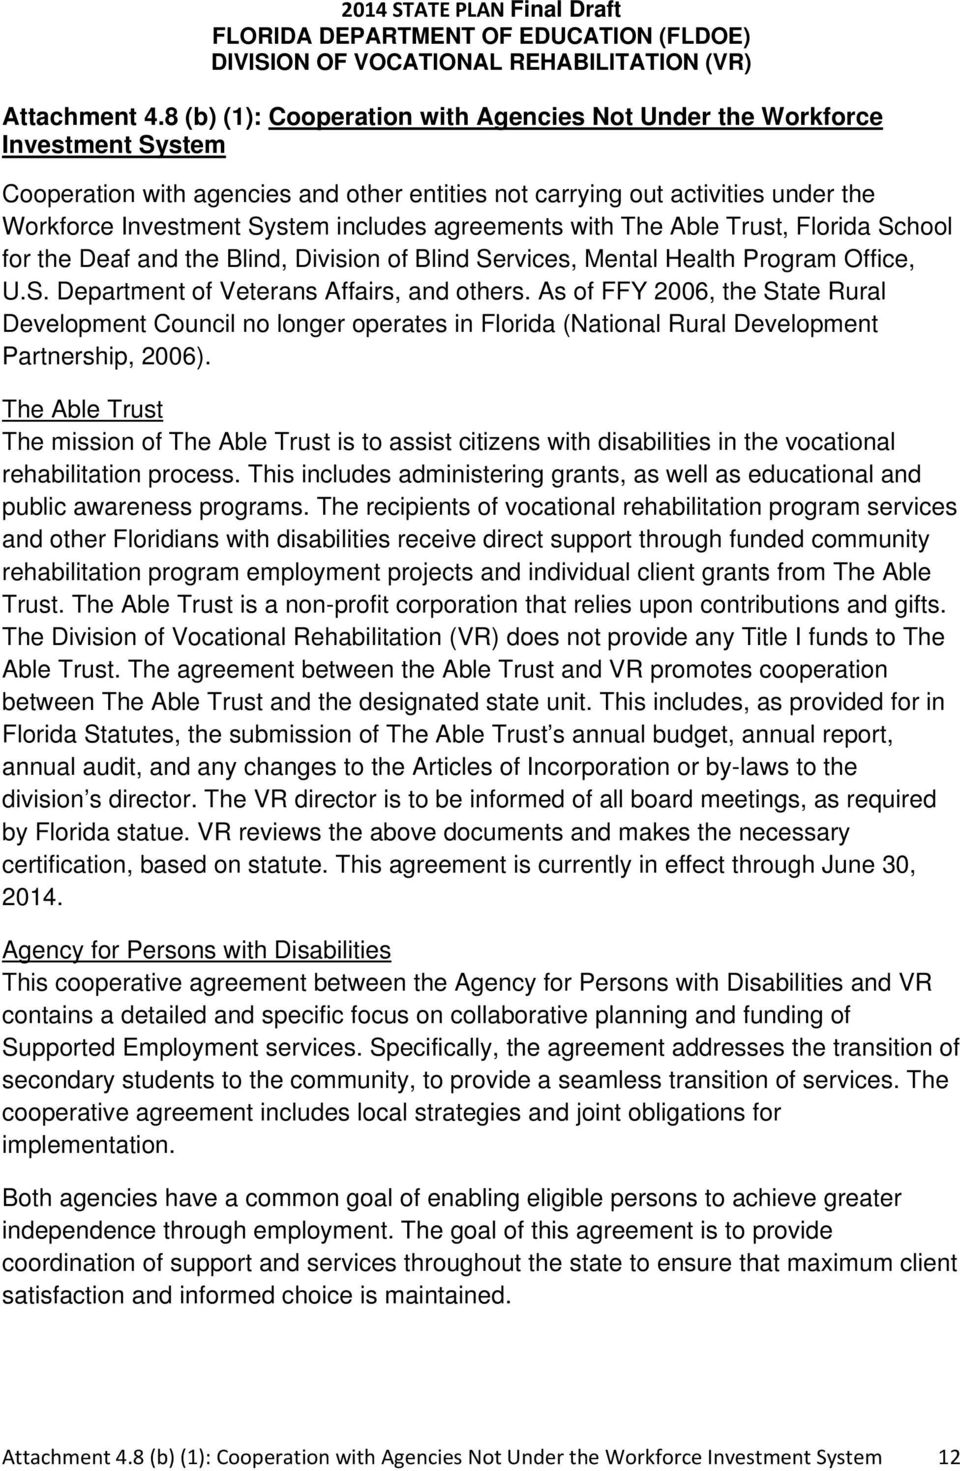 agreements with The Able Trust, Florida School for the Deaf and the Blind, Division of Blind Services, Mental Health Program Office, U.S. Department of Veterans Affairs, and others.